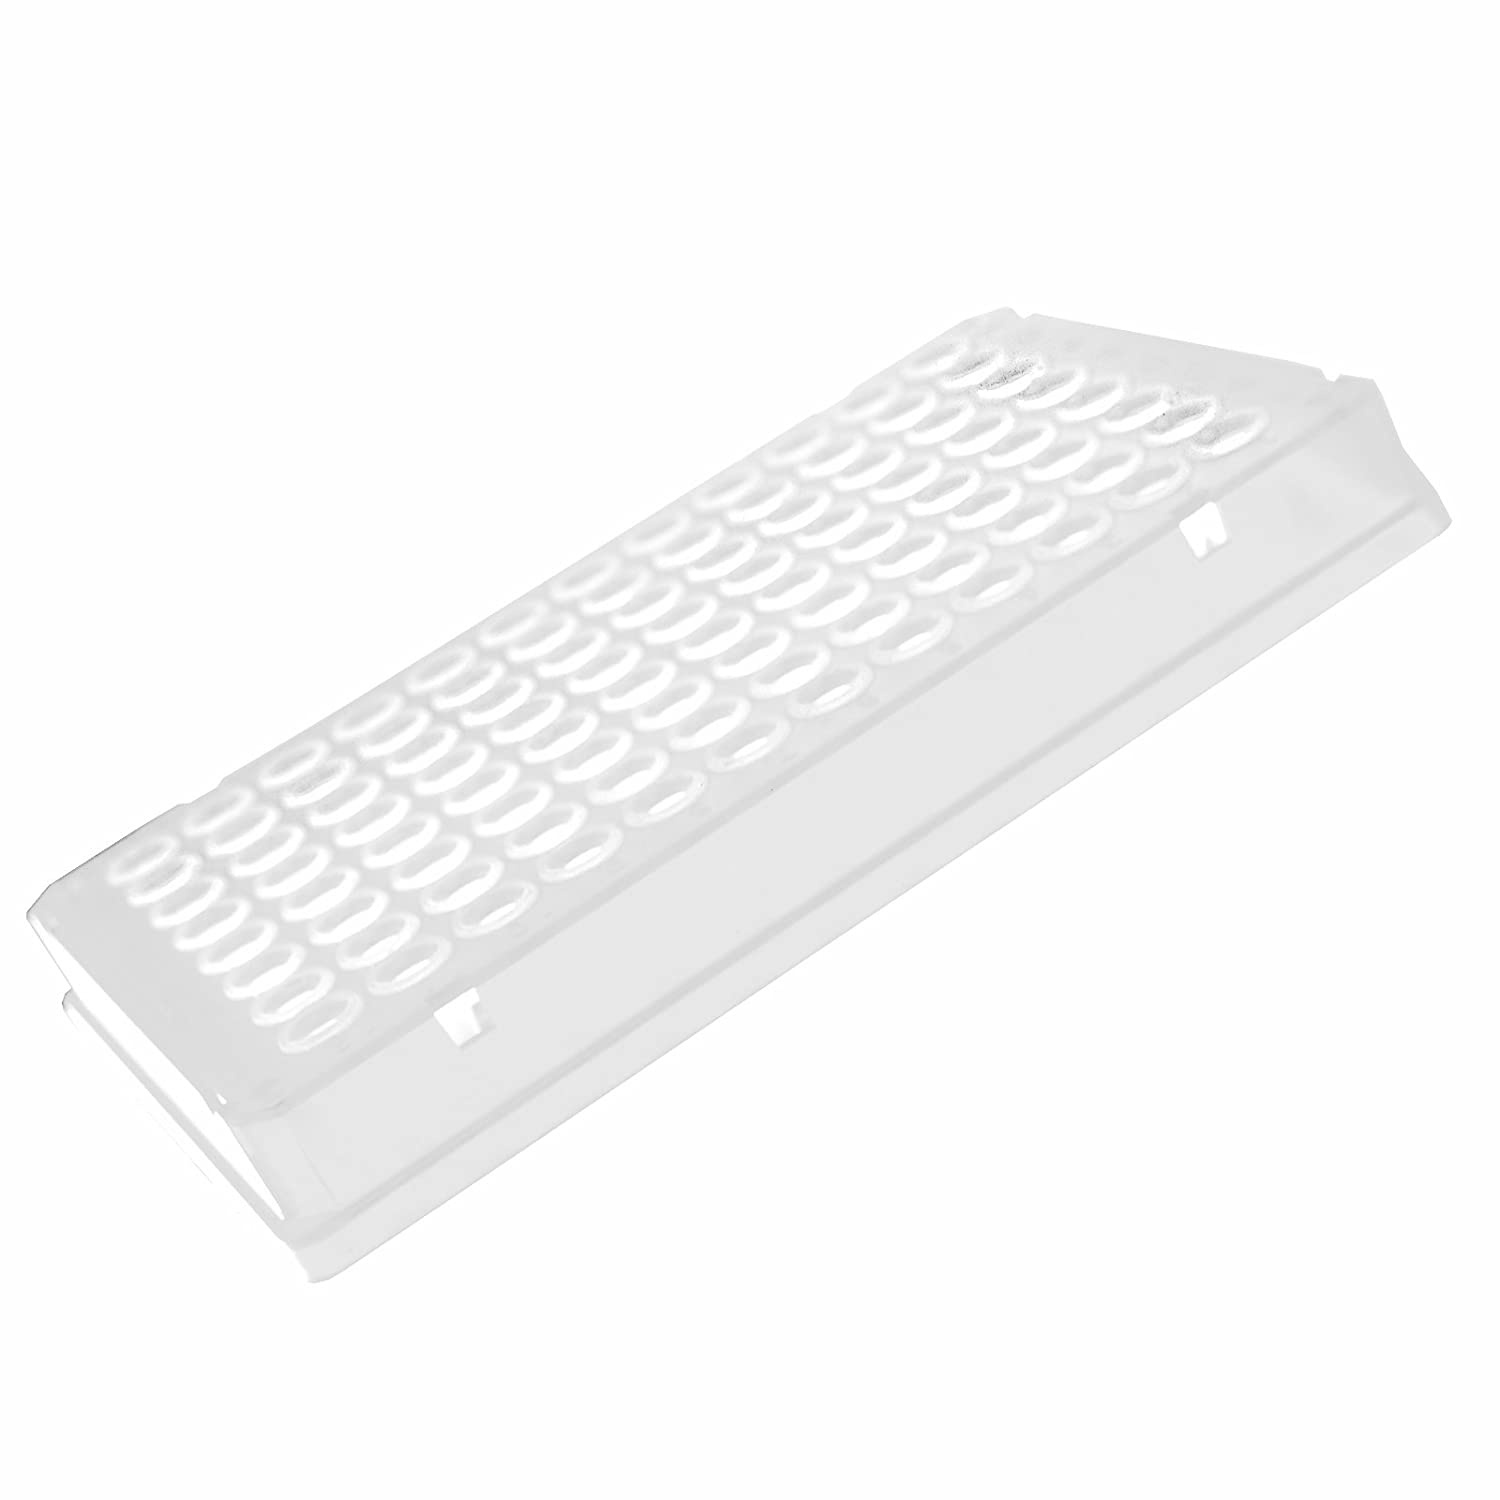 Axygen P-96-450R-W Deep Well 96-Well x 500 microliter Assay Storage Microplate with Round Bottom Wells, White PP (1 Case: 10 Plates/Unit; 5 Units/Case)